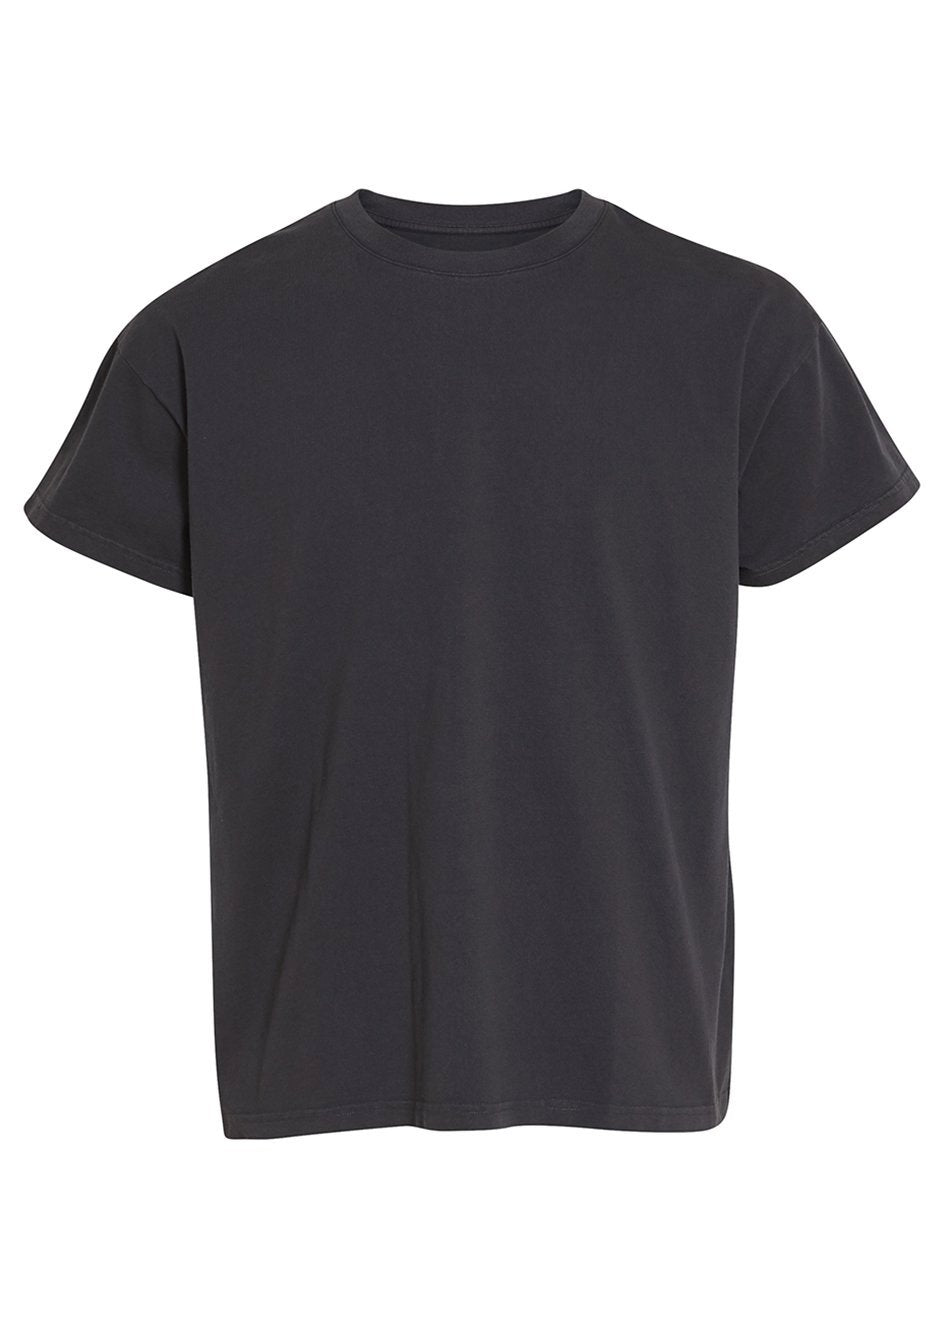 Marcel 200 Blue Grey Men's Tee